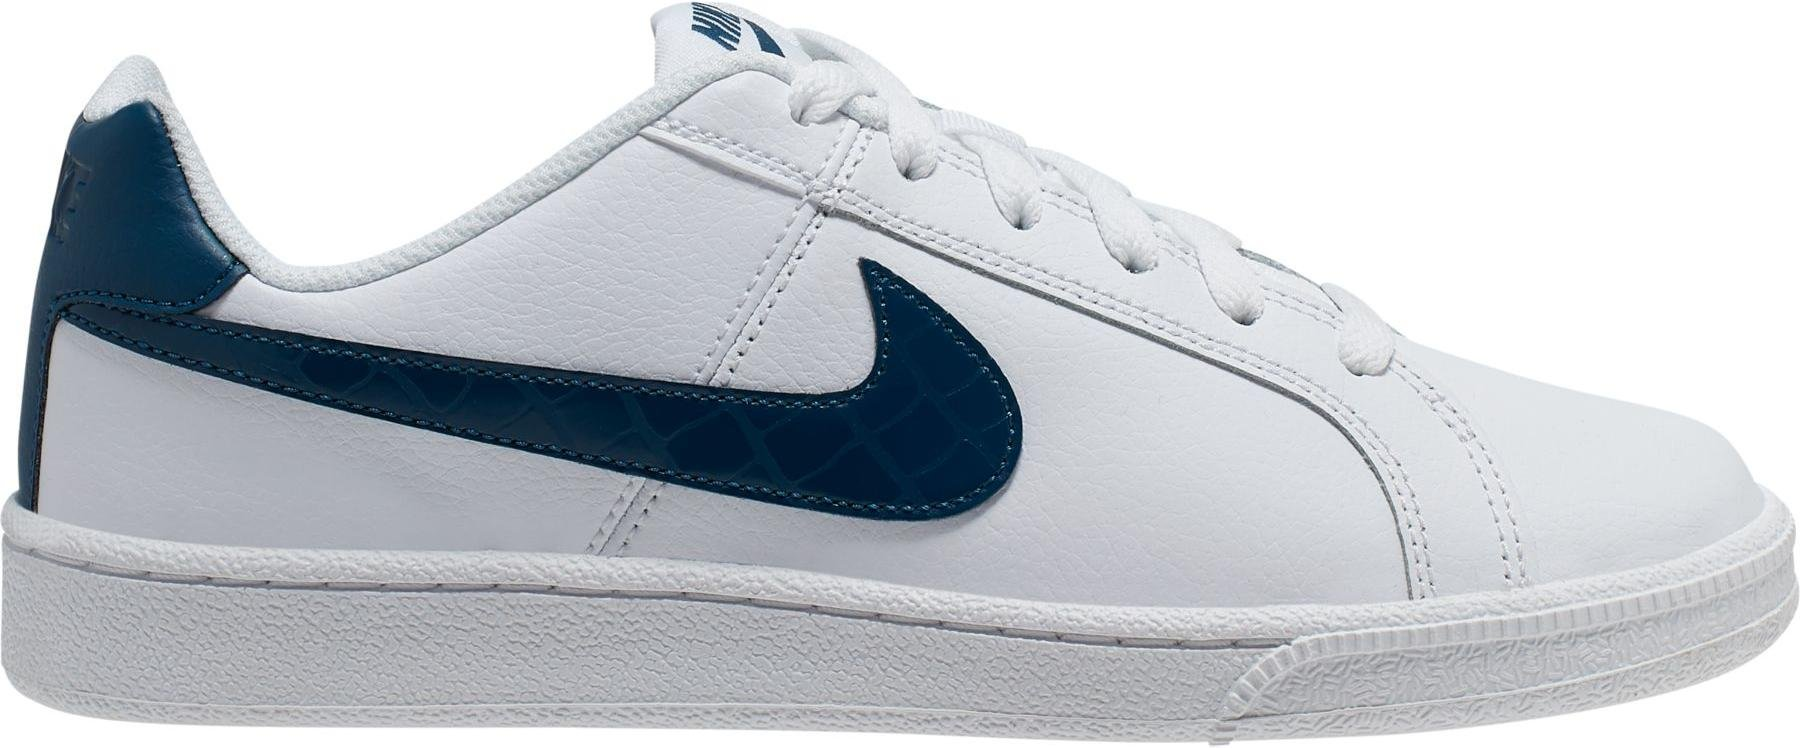 sneakers homme court royale nike